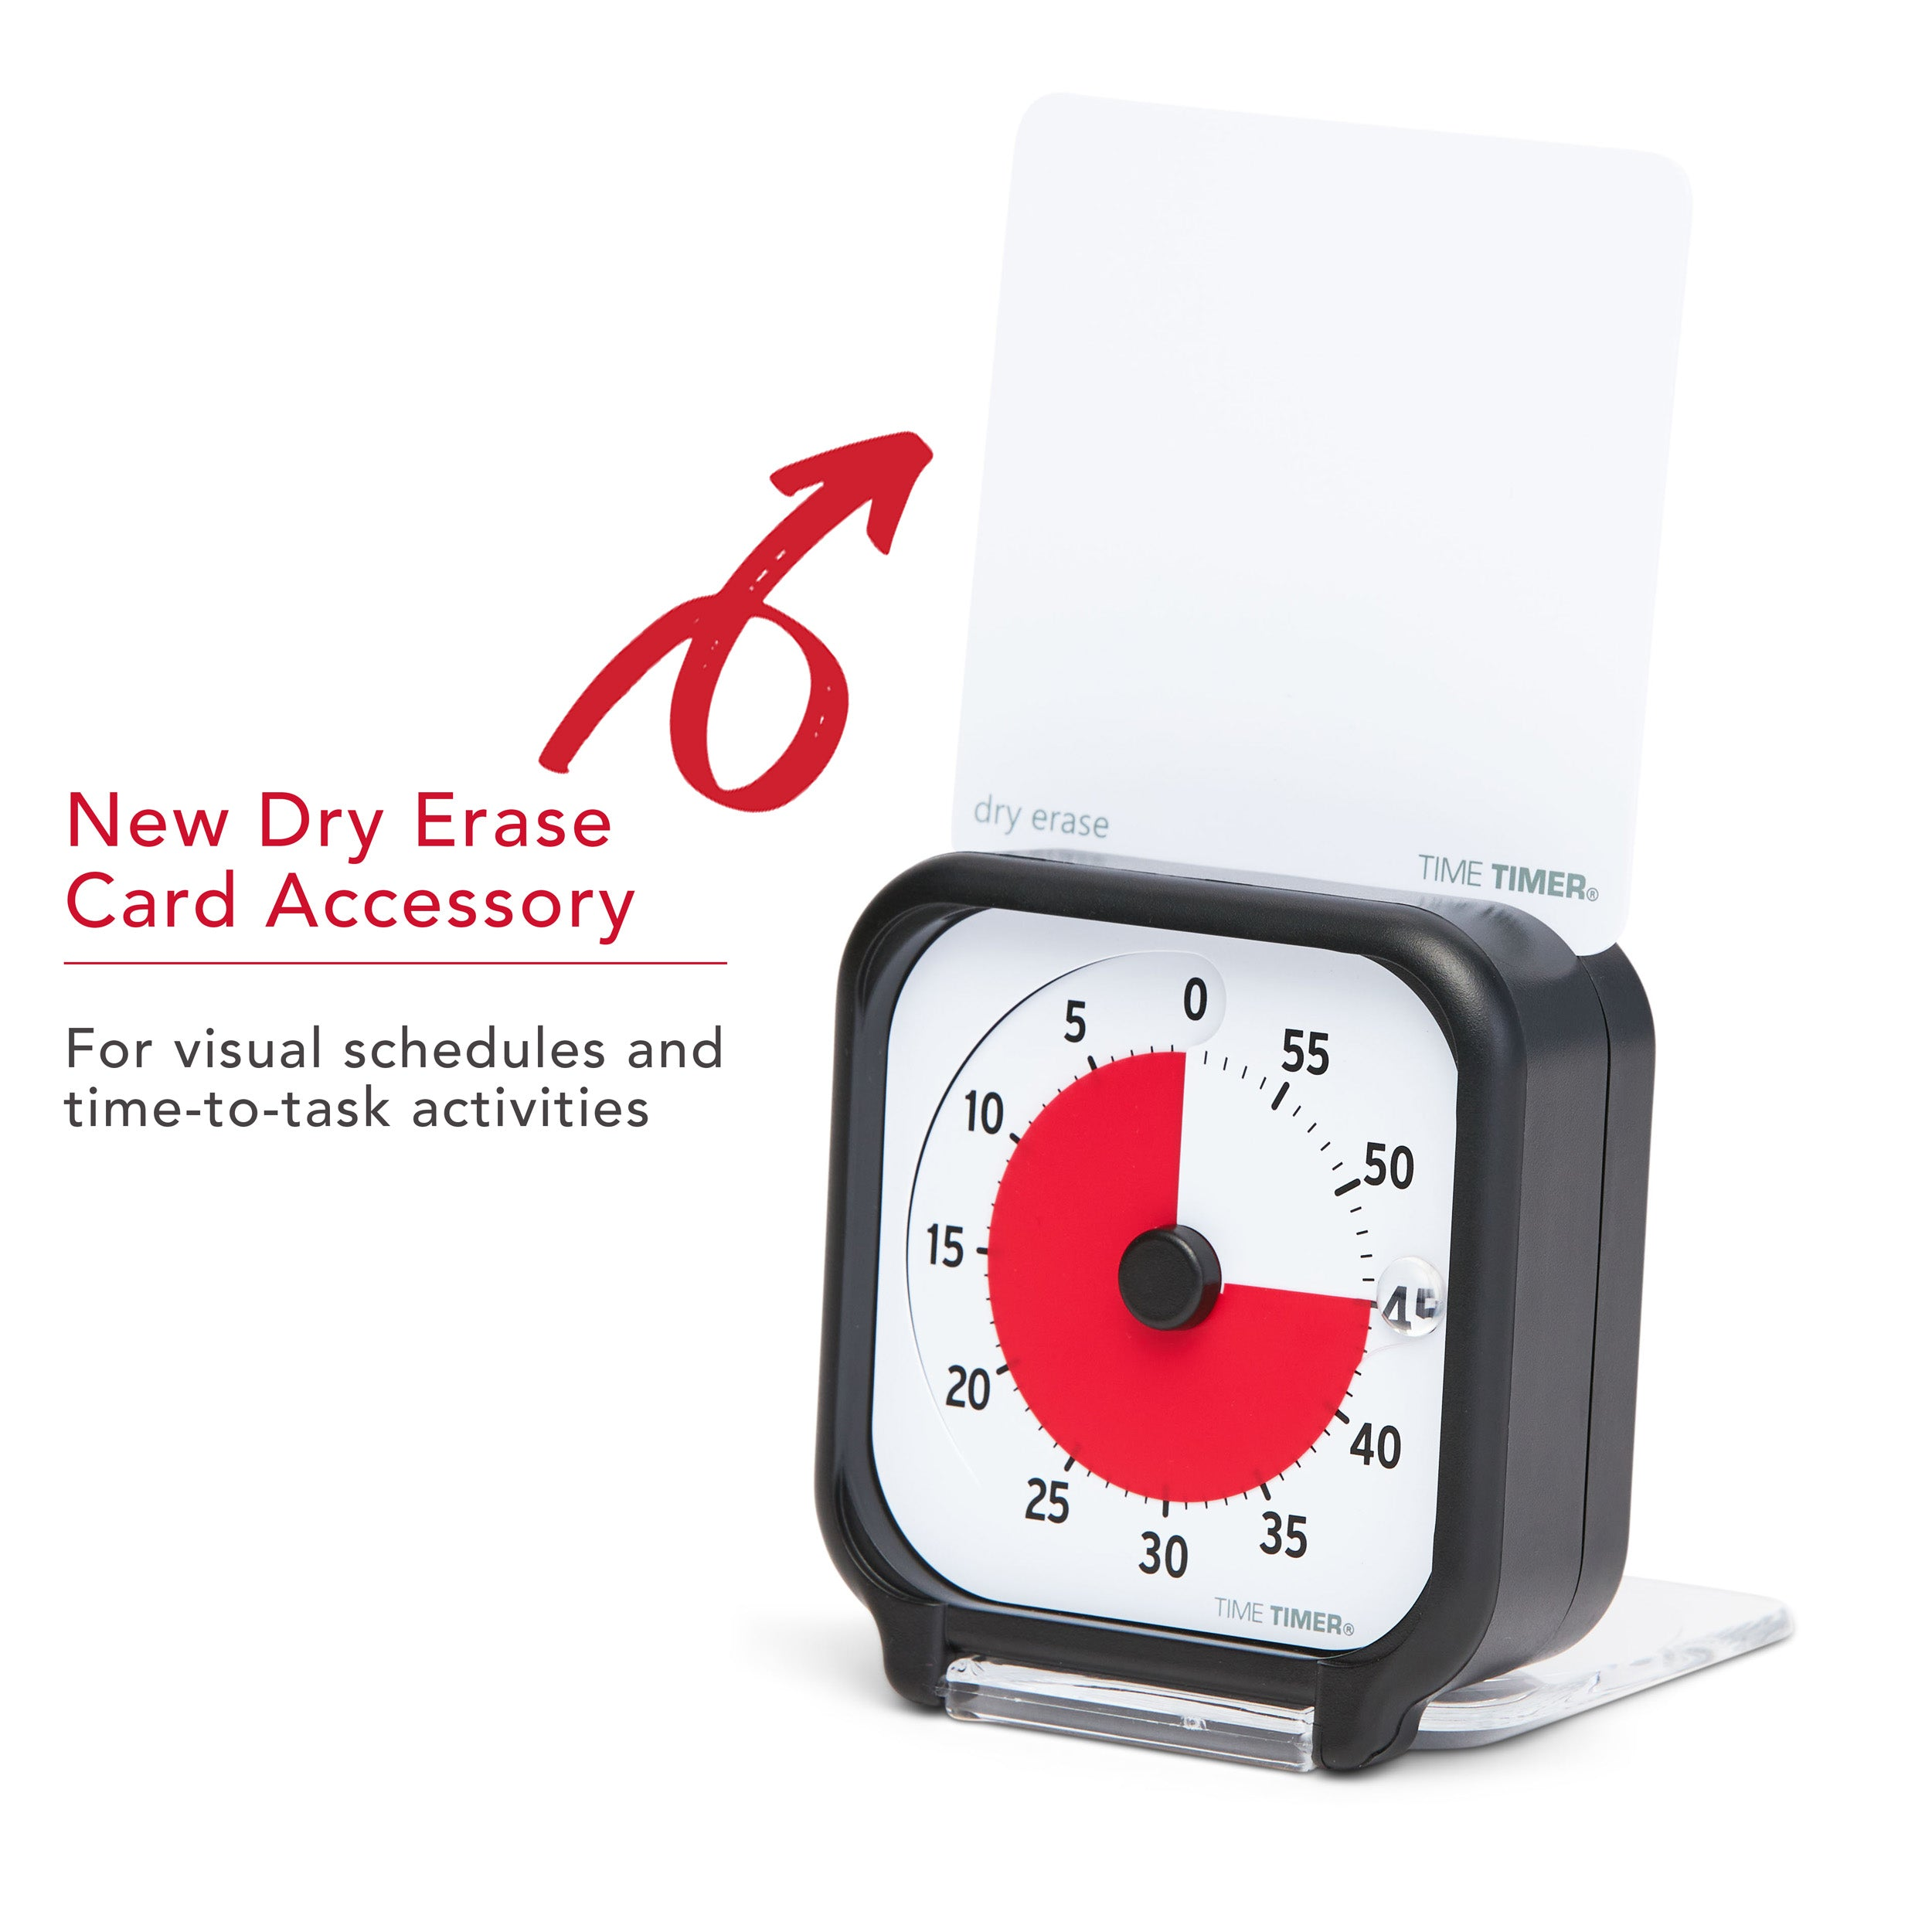 Time Timer Original 3 inch Visual Timer - Pocket. The Time Timer Original 3-inch comes with a 3.5x3.5 inch Sry Erase Activity Card that slides into the slot on the top of the timer. This allows you to write or draw tasks or activities for time-to-task focus or a visual schedule.